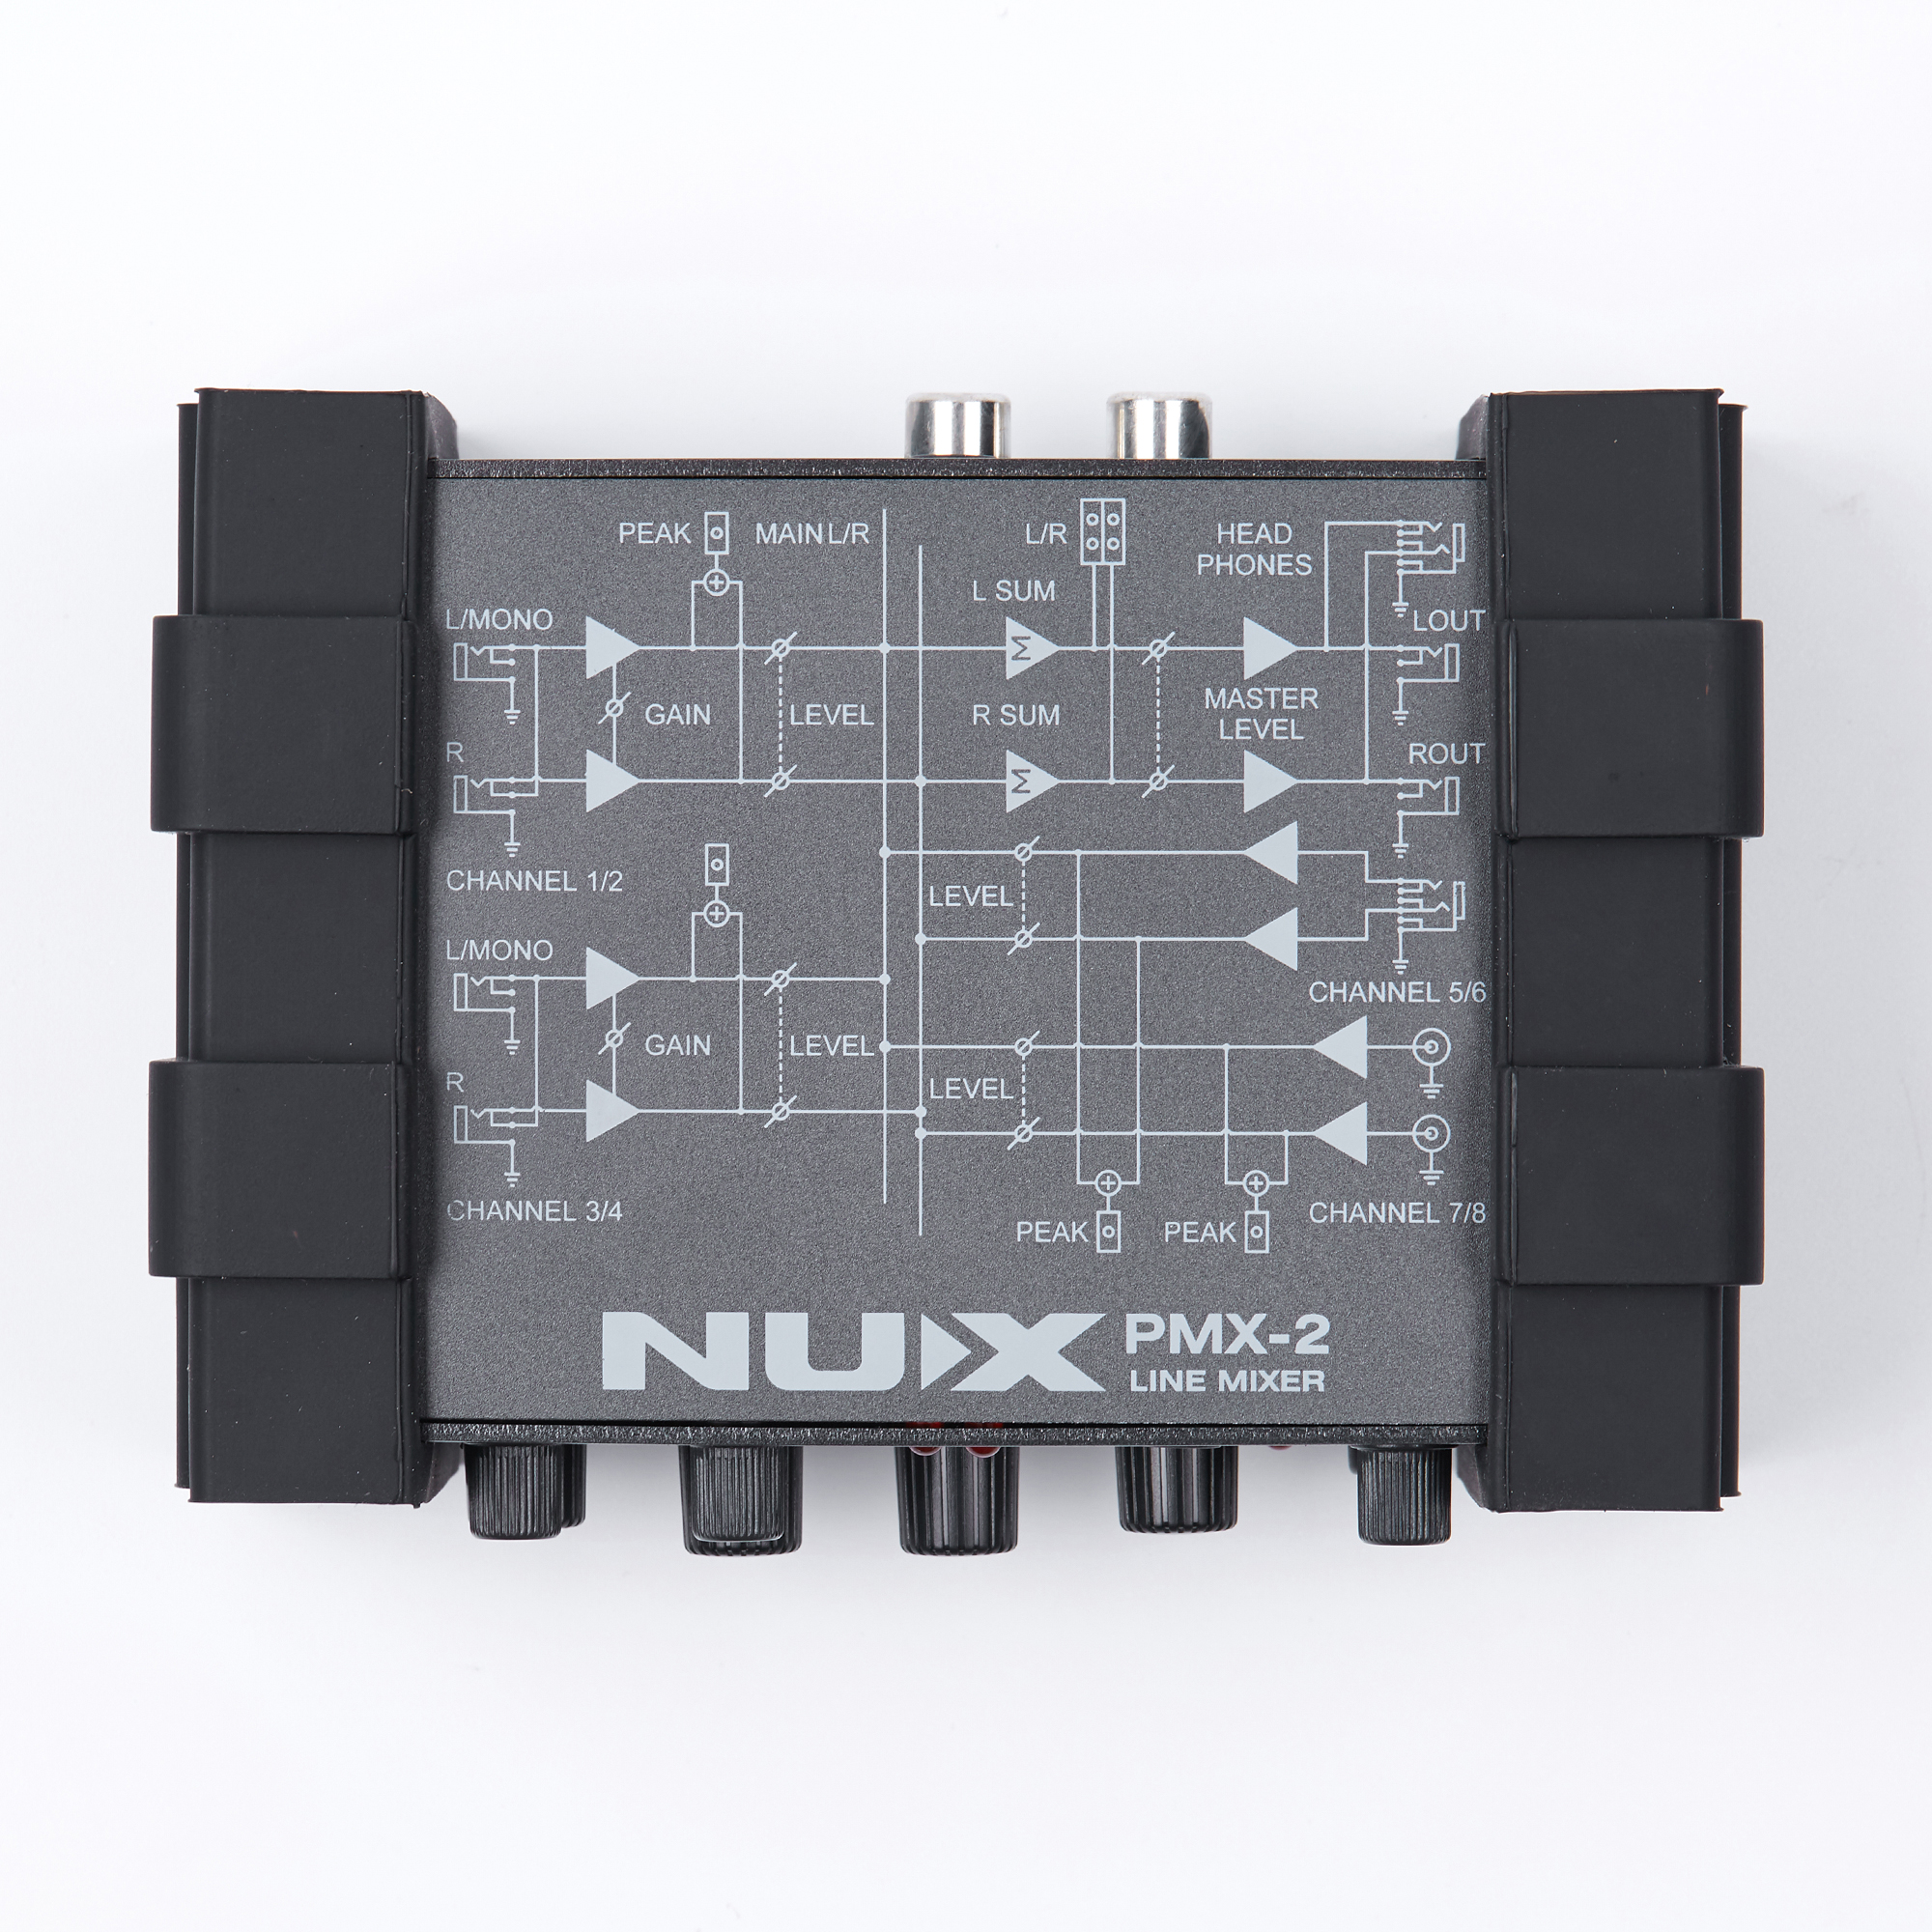 Gain Control 8 Inputs and 2 Outputs NUX PMX-2 Multi-Channel Mini Mixer 30 Musical Instruments Accessories for Guitar Bass Player термокружки тайга термокружка тайга 0 5л т 012 металл